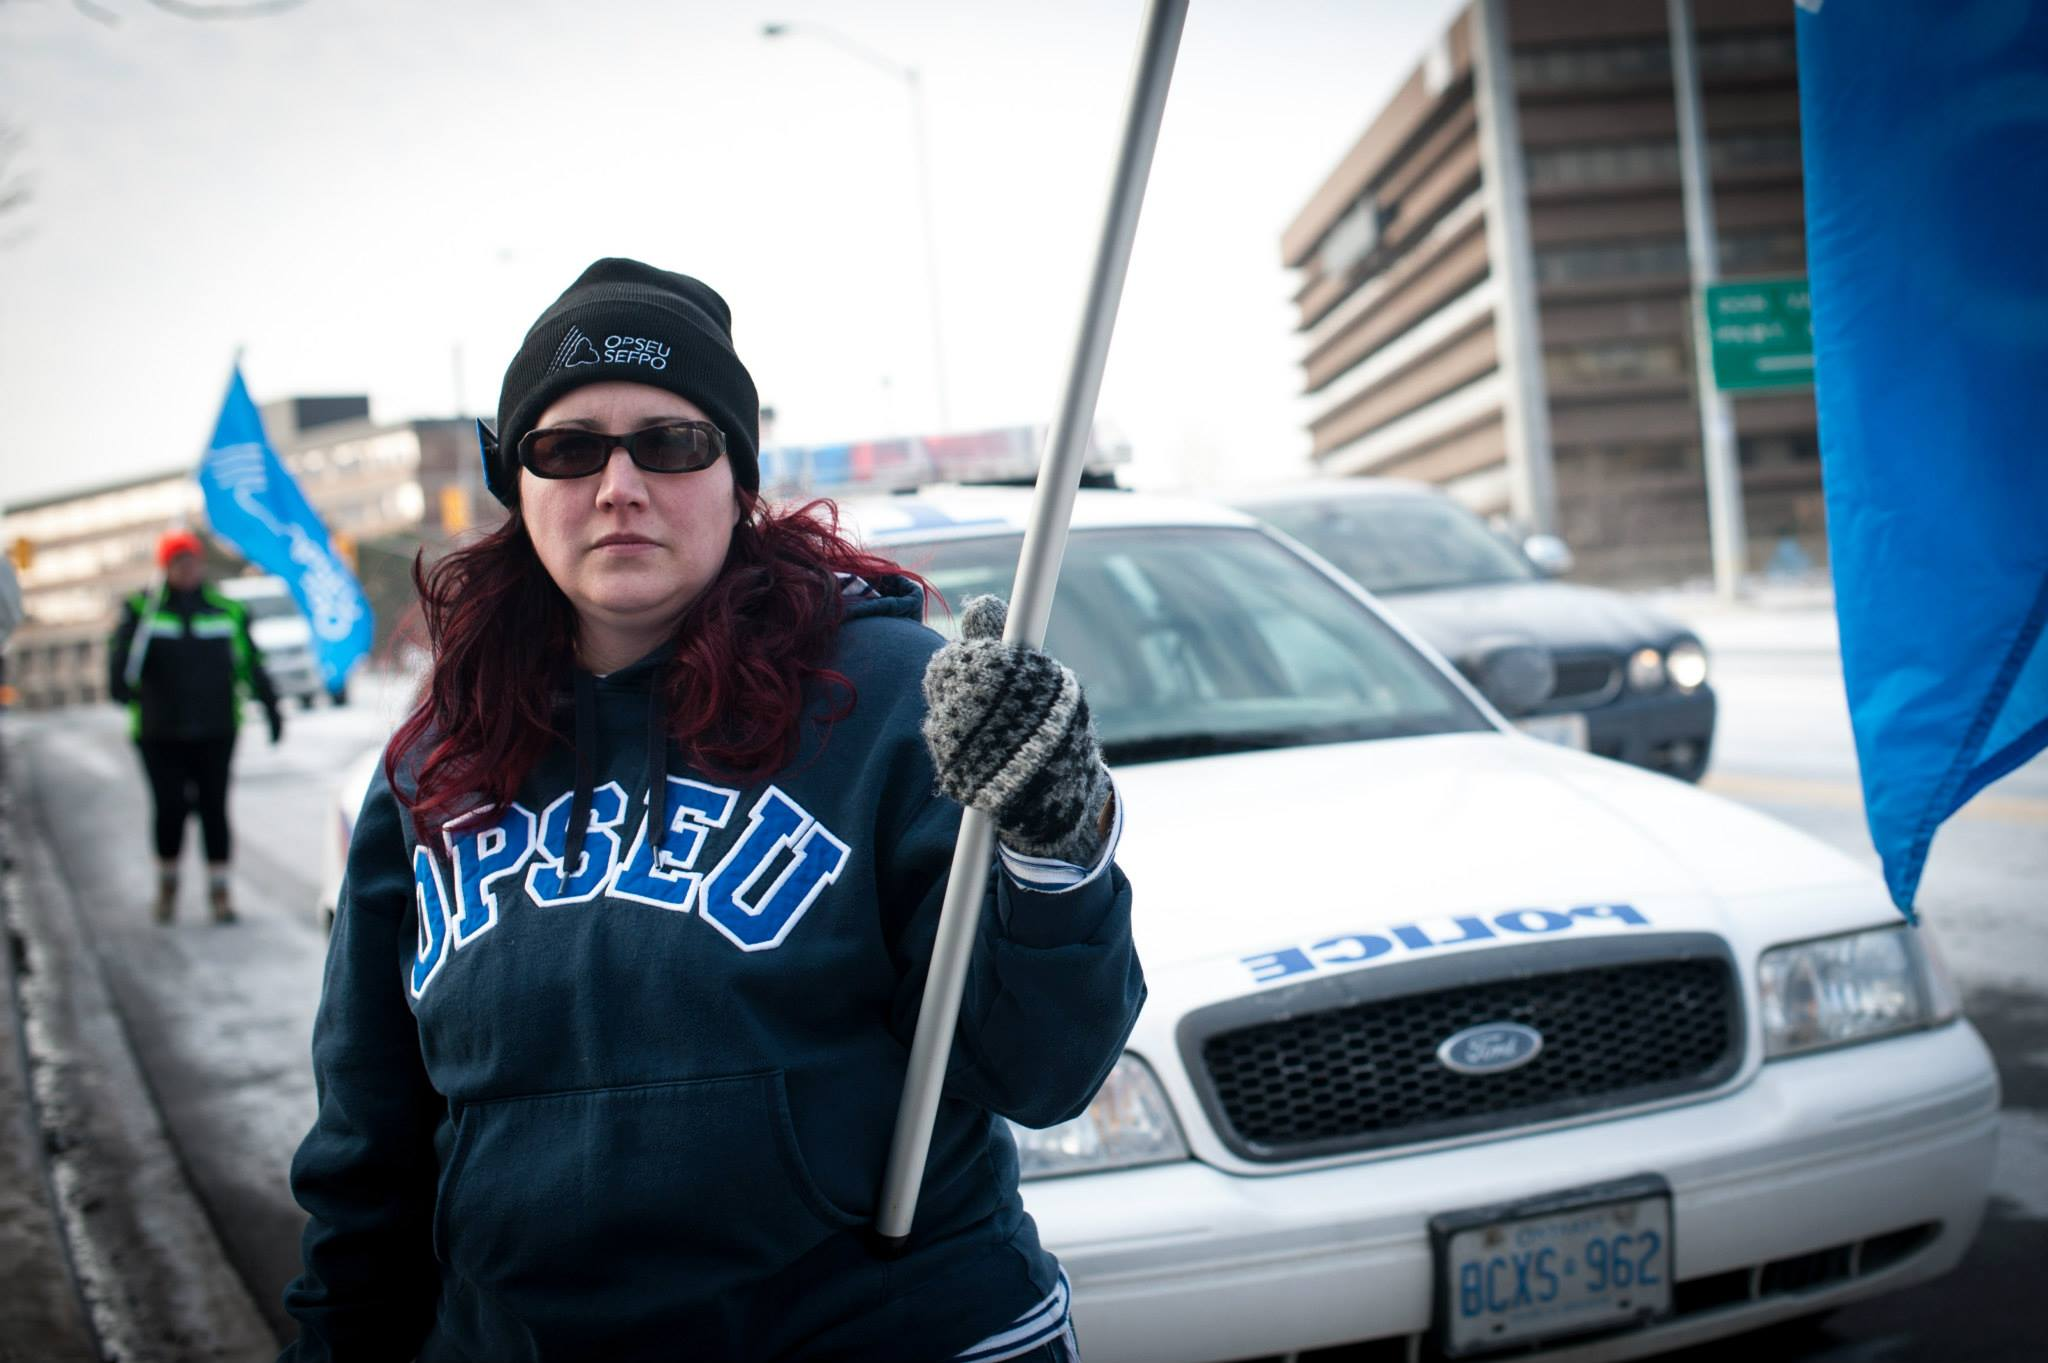 OPSEU member standing with OPSEU flag in front of police car